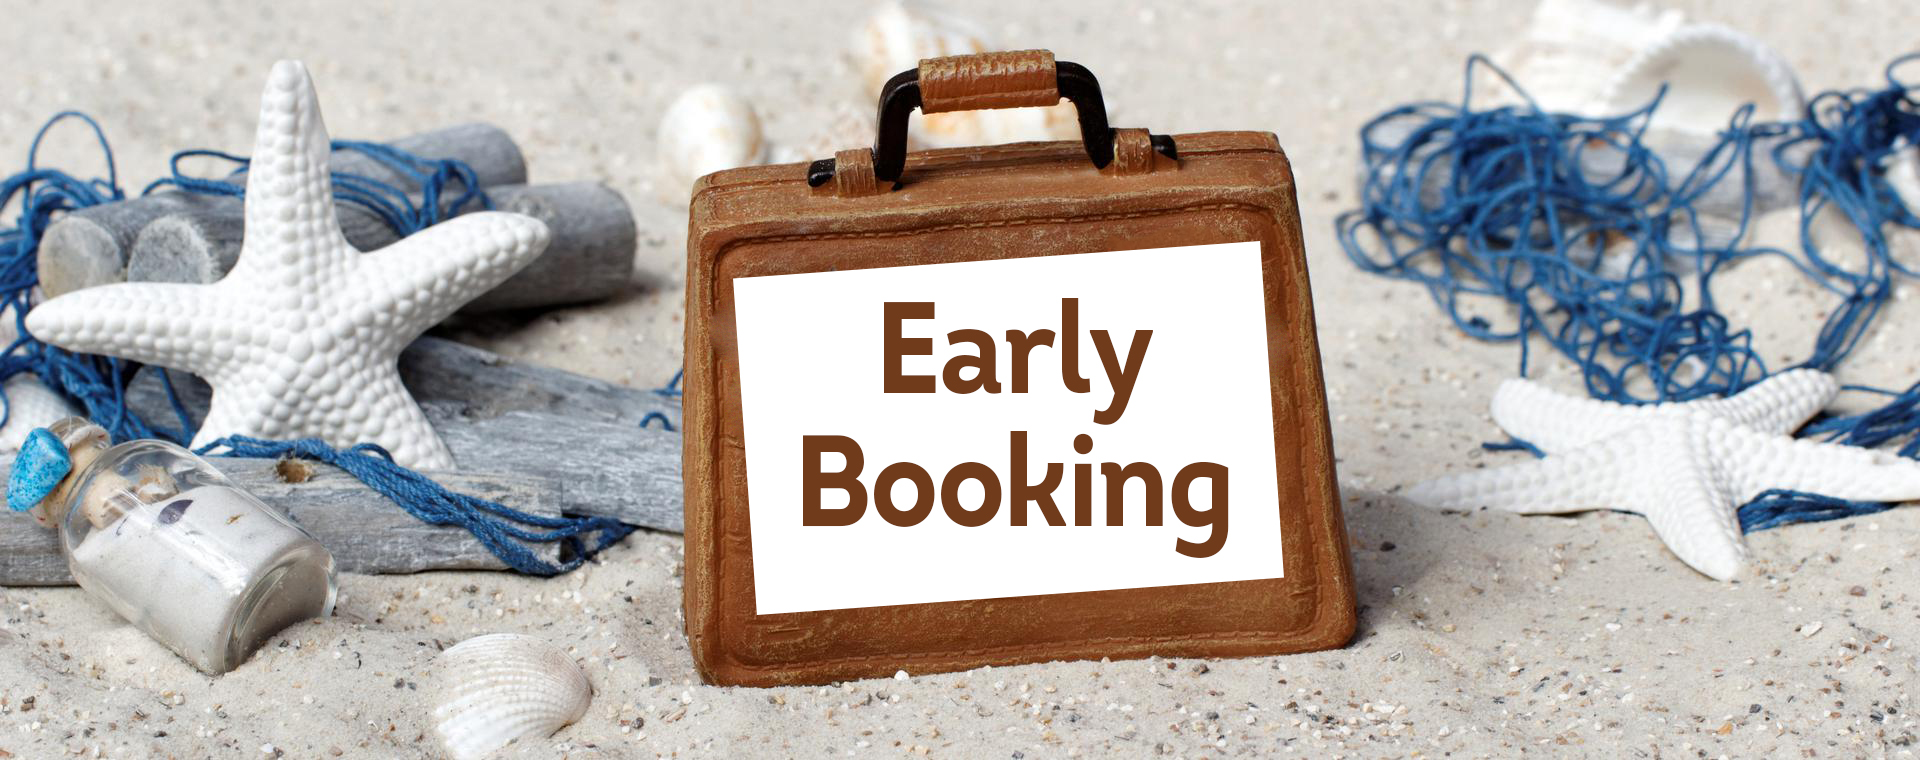 early-booking-sardegna